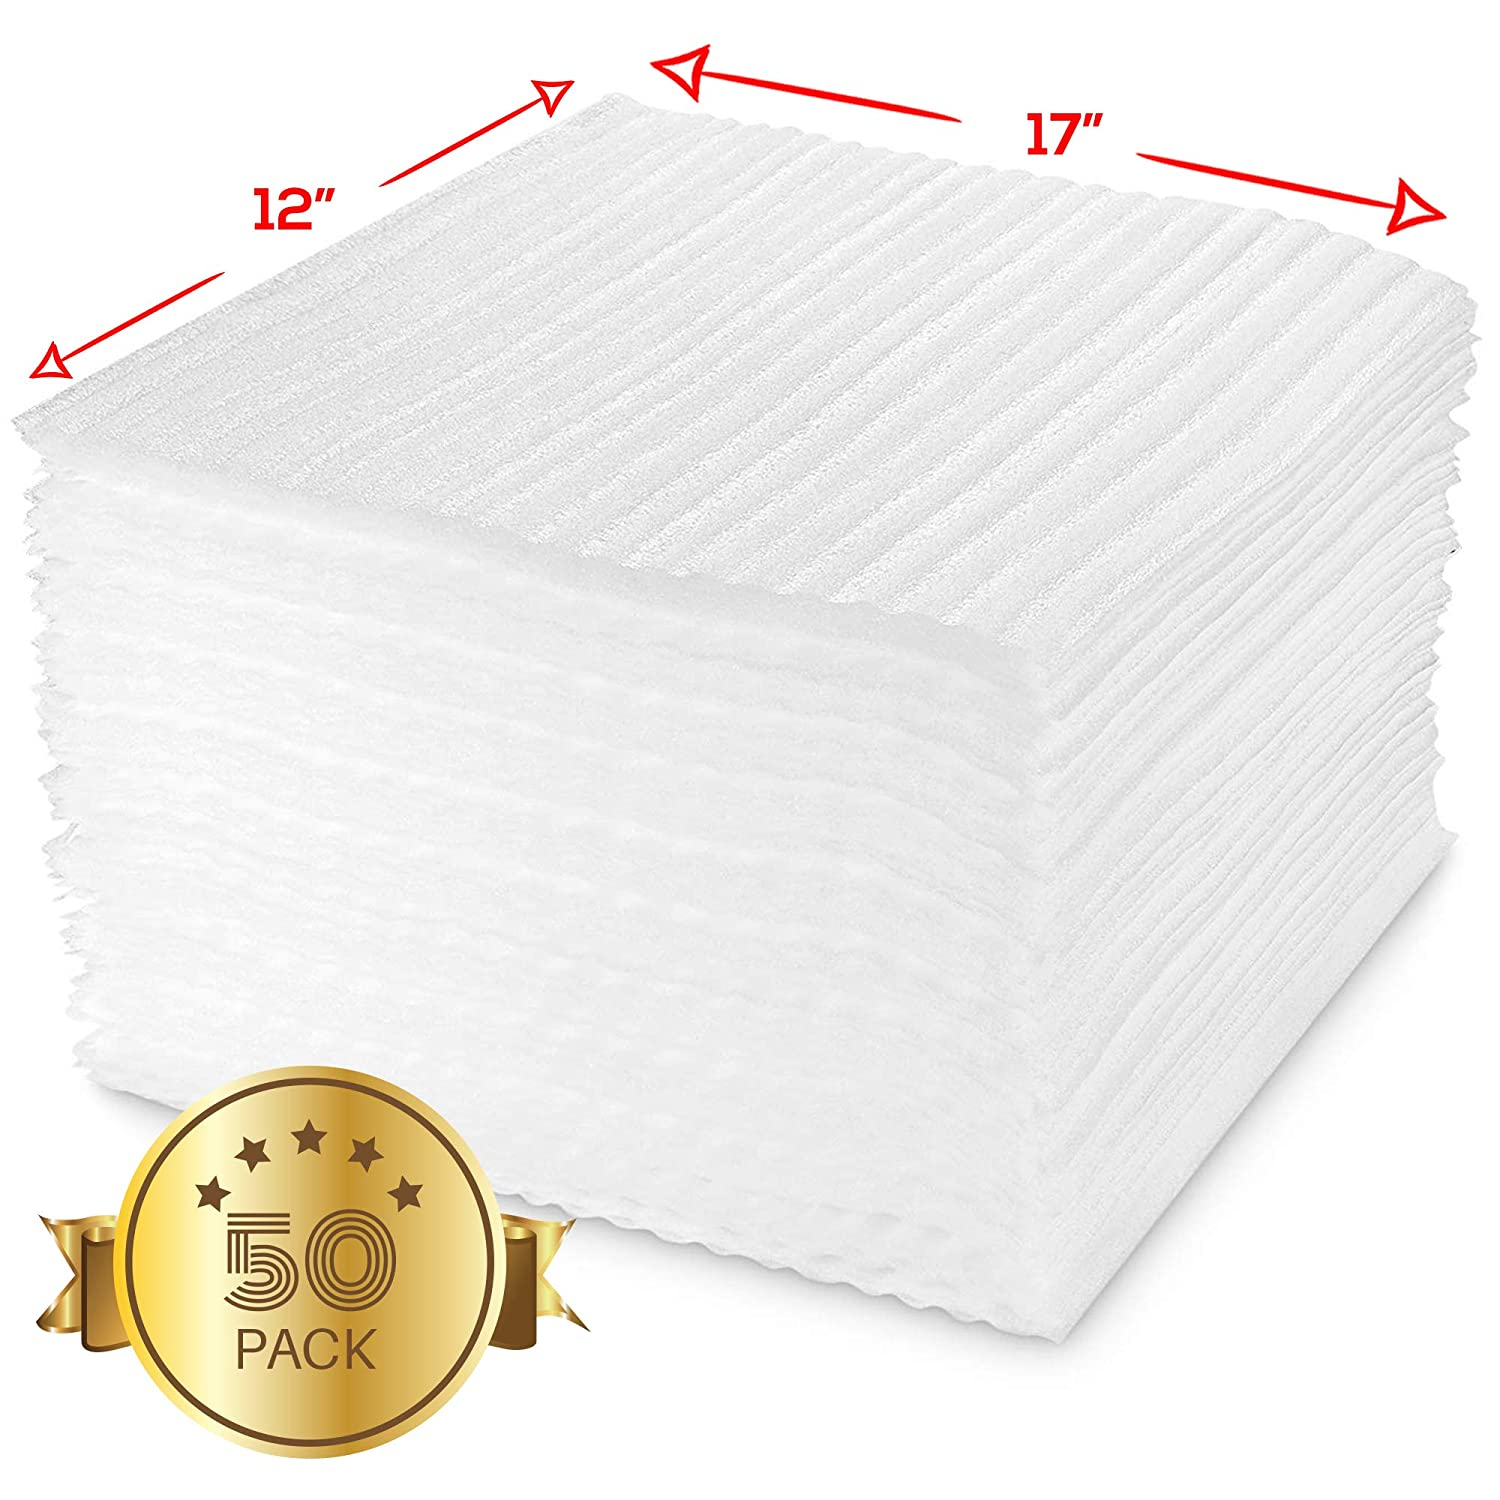 Foam Wrapping and Glass Protection When Moving or Storing Fragile Items Safely Cushion Foam Sheets for Packing 17 x 12-50 Pack